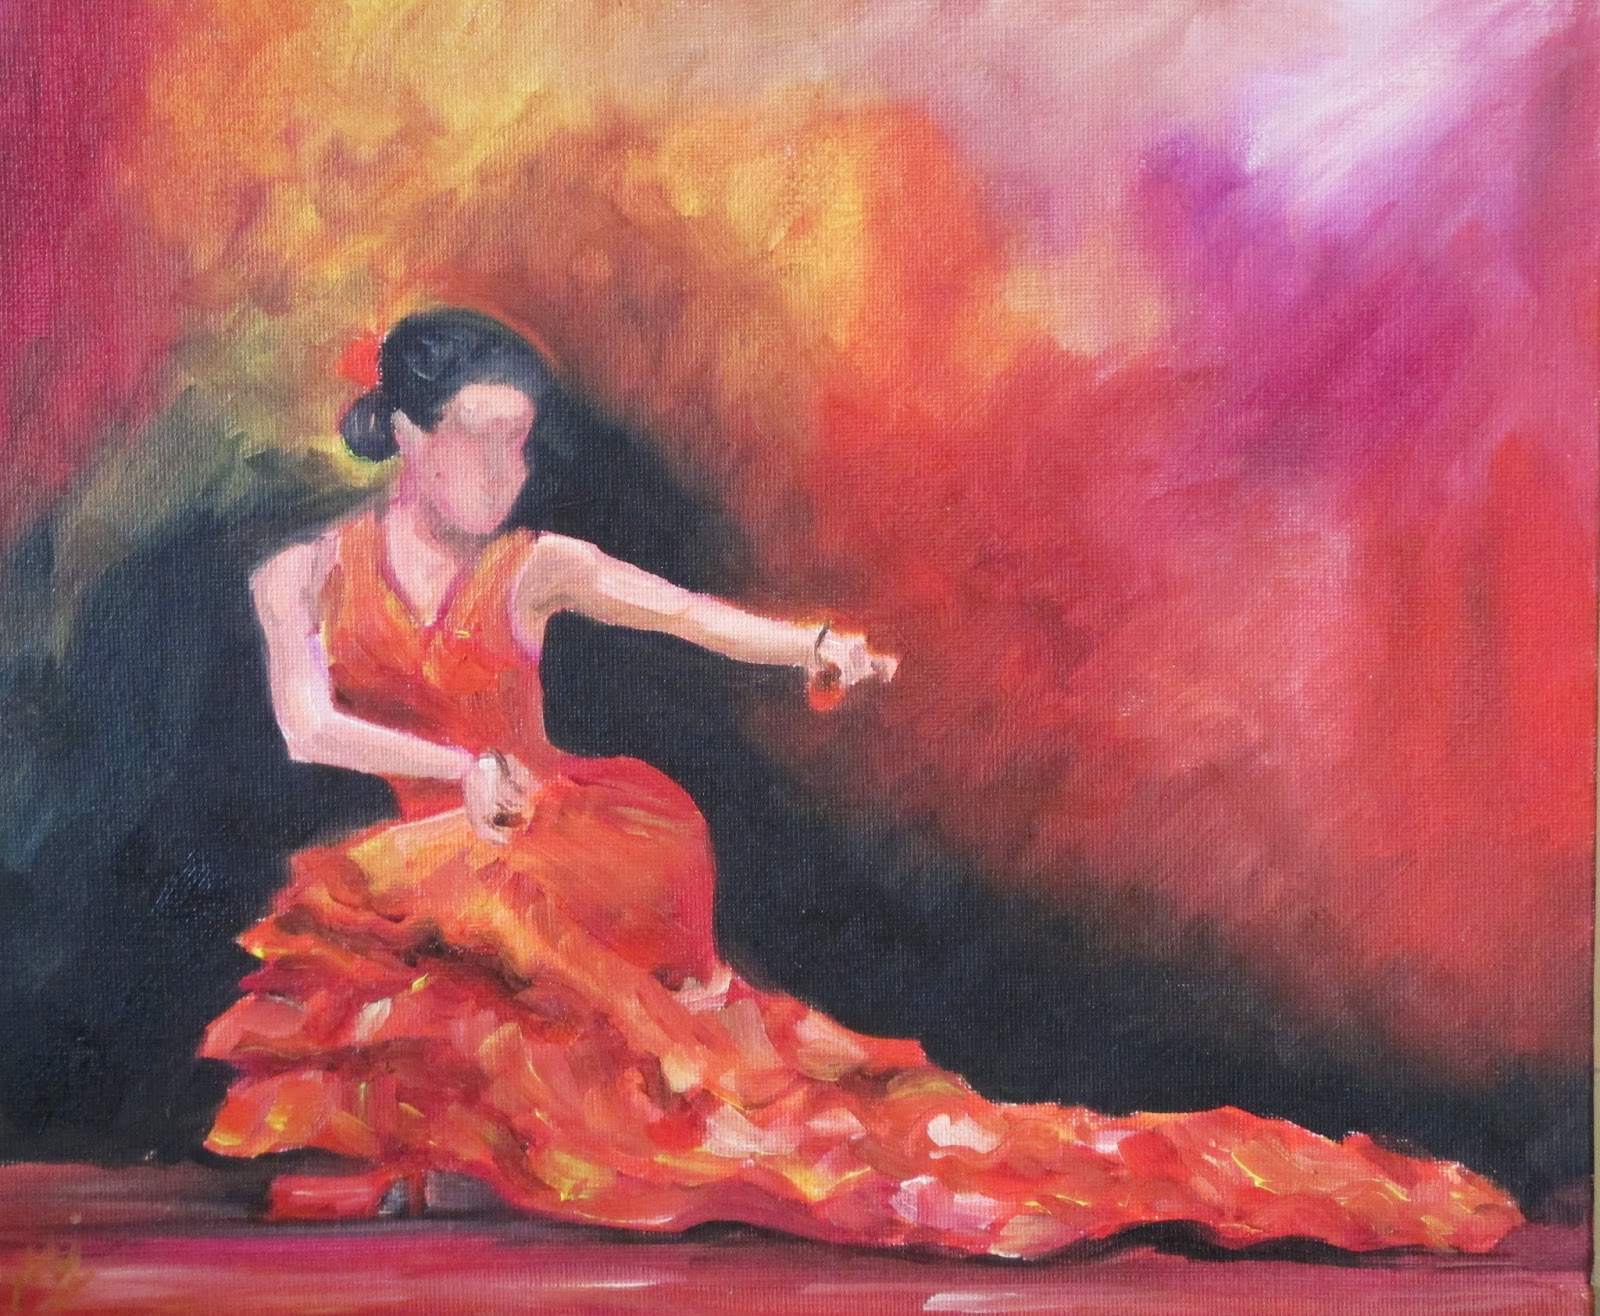 oil paintings by maria j jimenez playing castanets